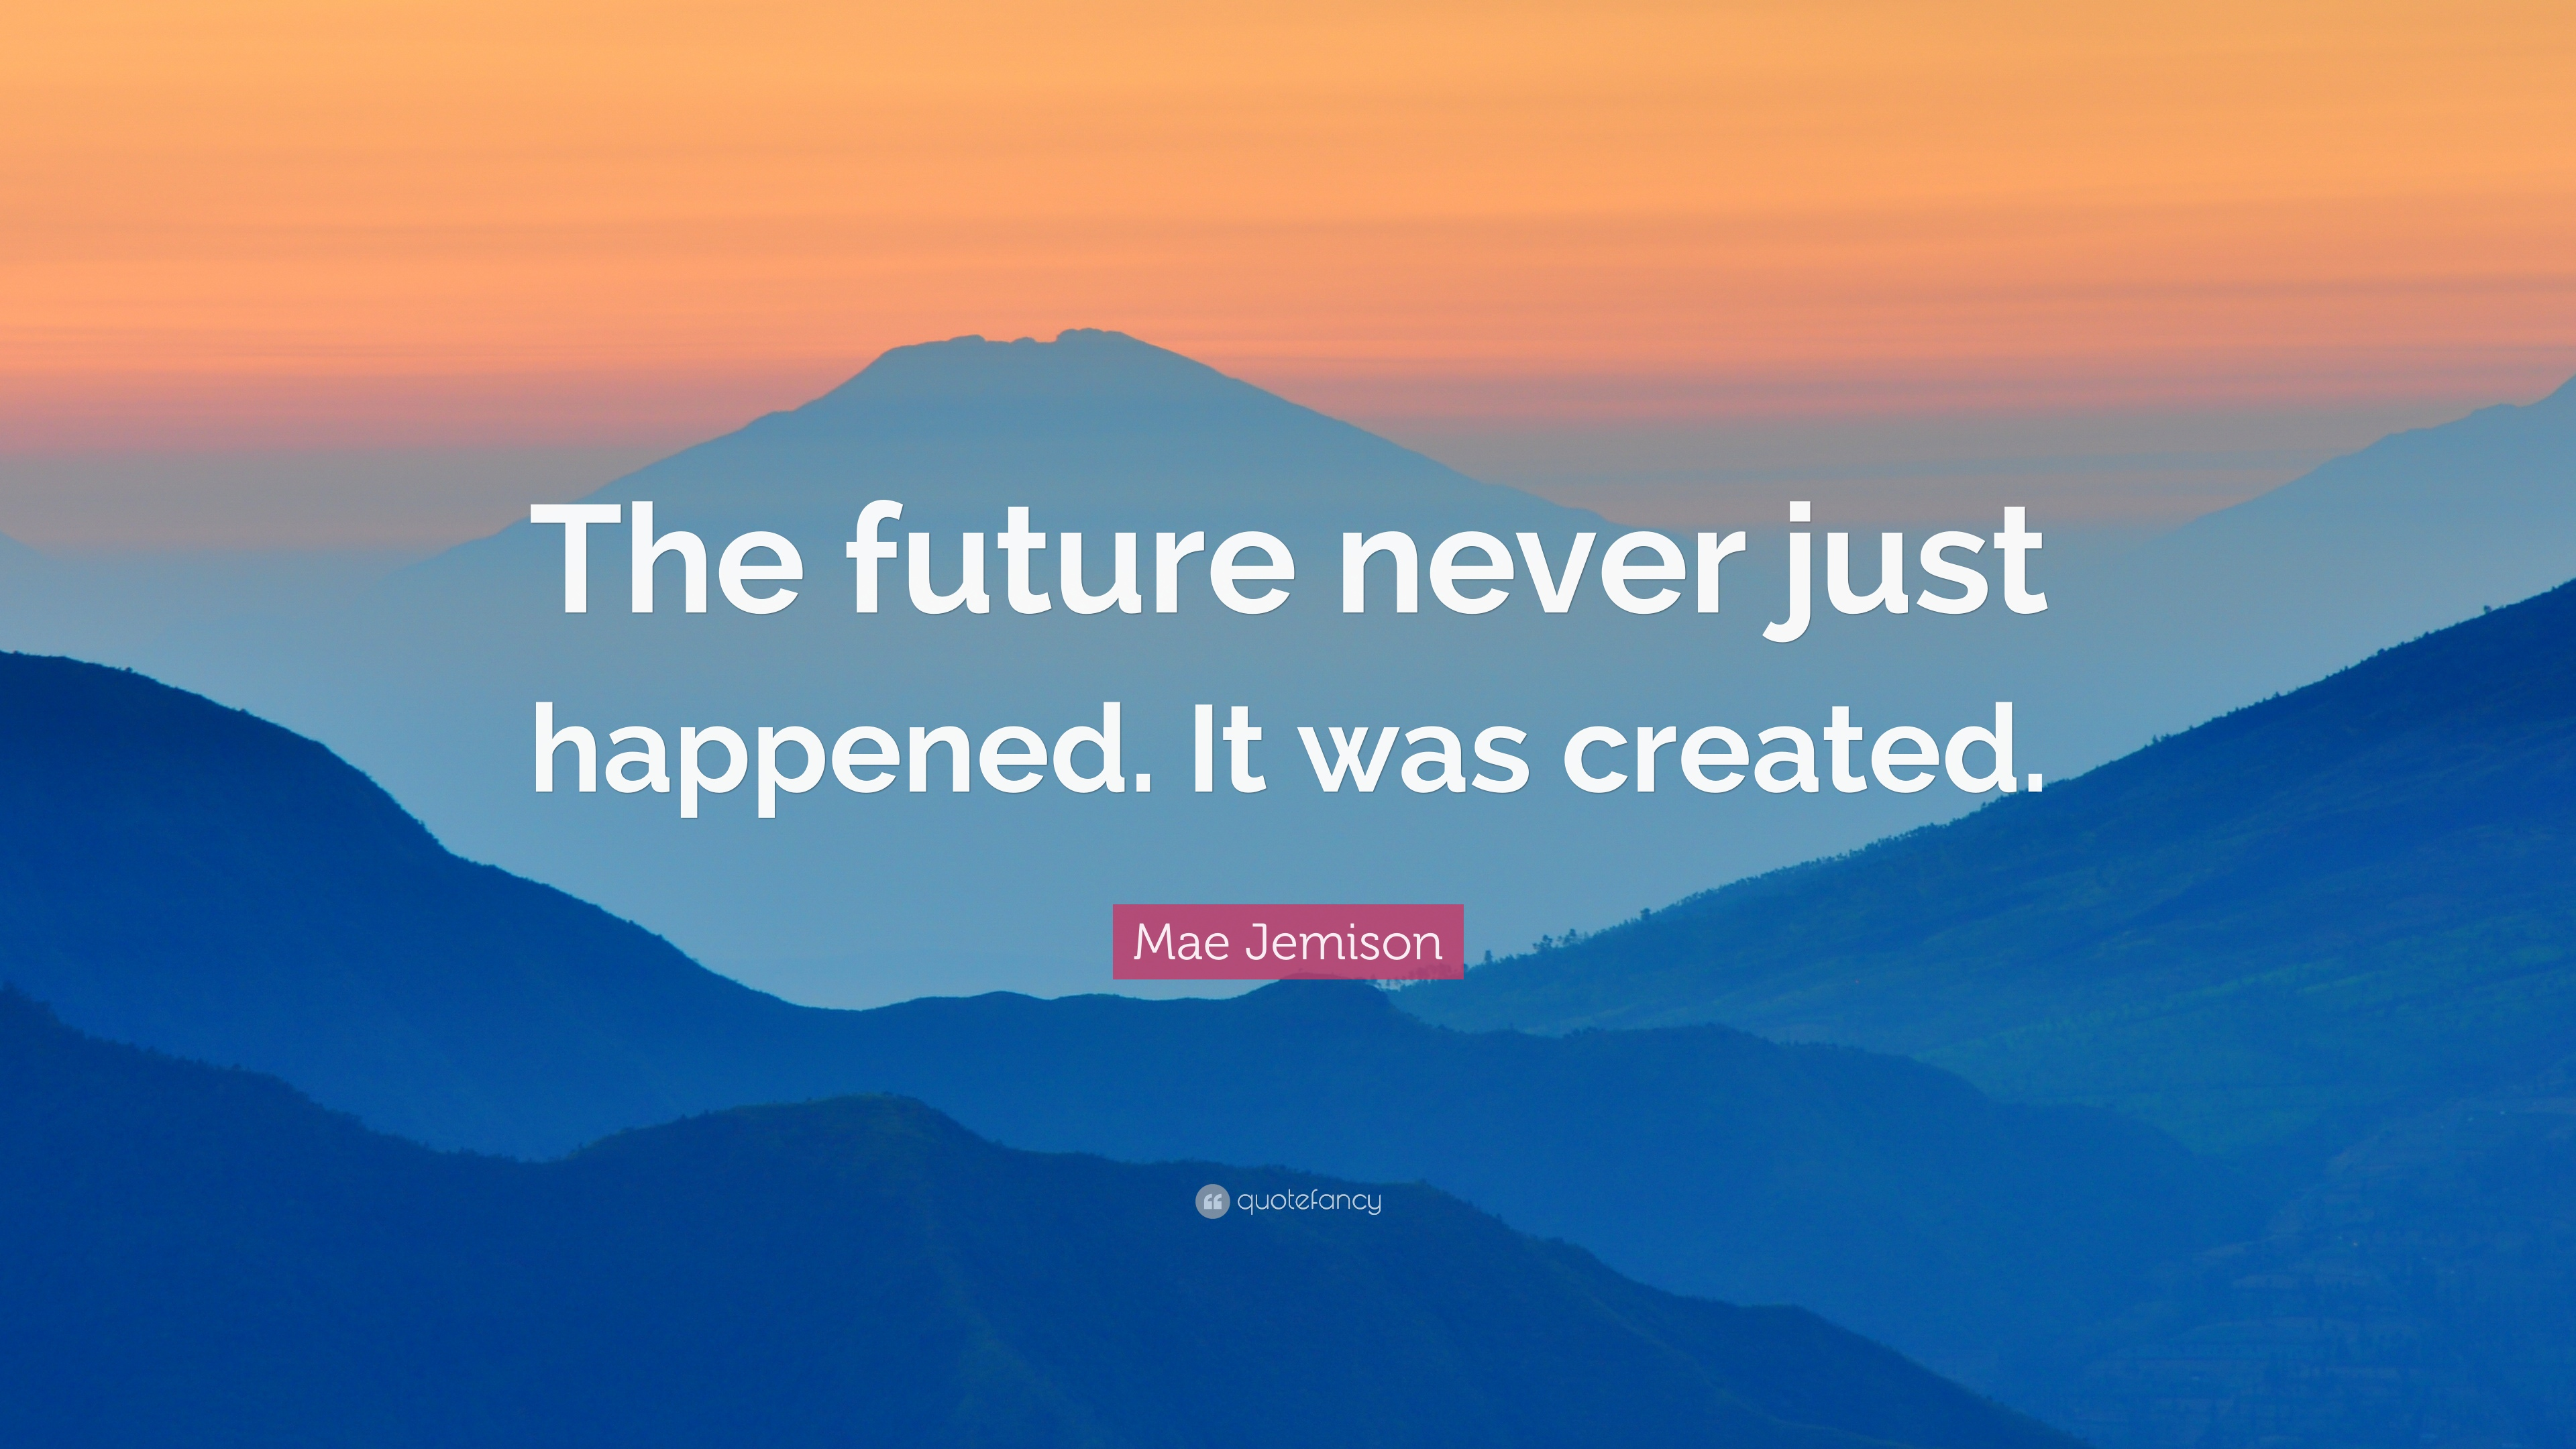 Mae Jemison Quotes (17 wallpapers) - Quotefancy